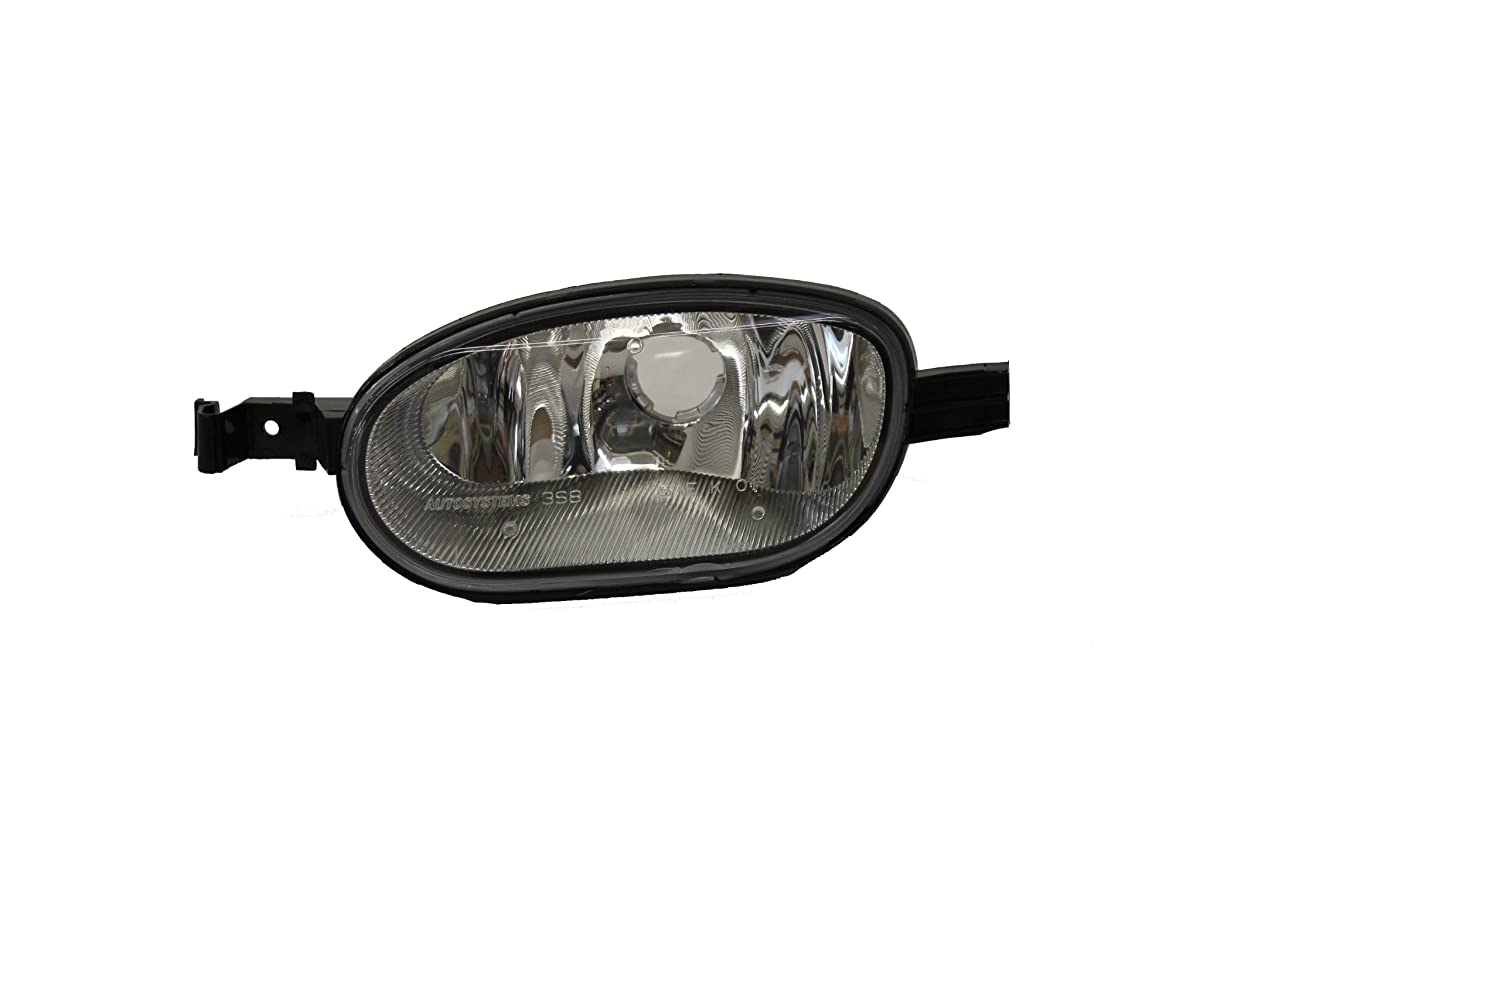 Genuine GM Parts 15937713 Driver Side Cornering Light Lens/Housing Genuine General Motors Parts